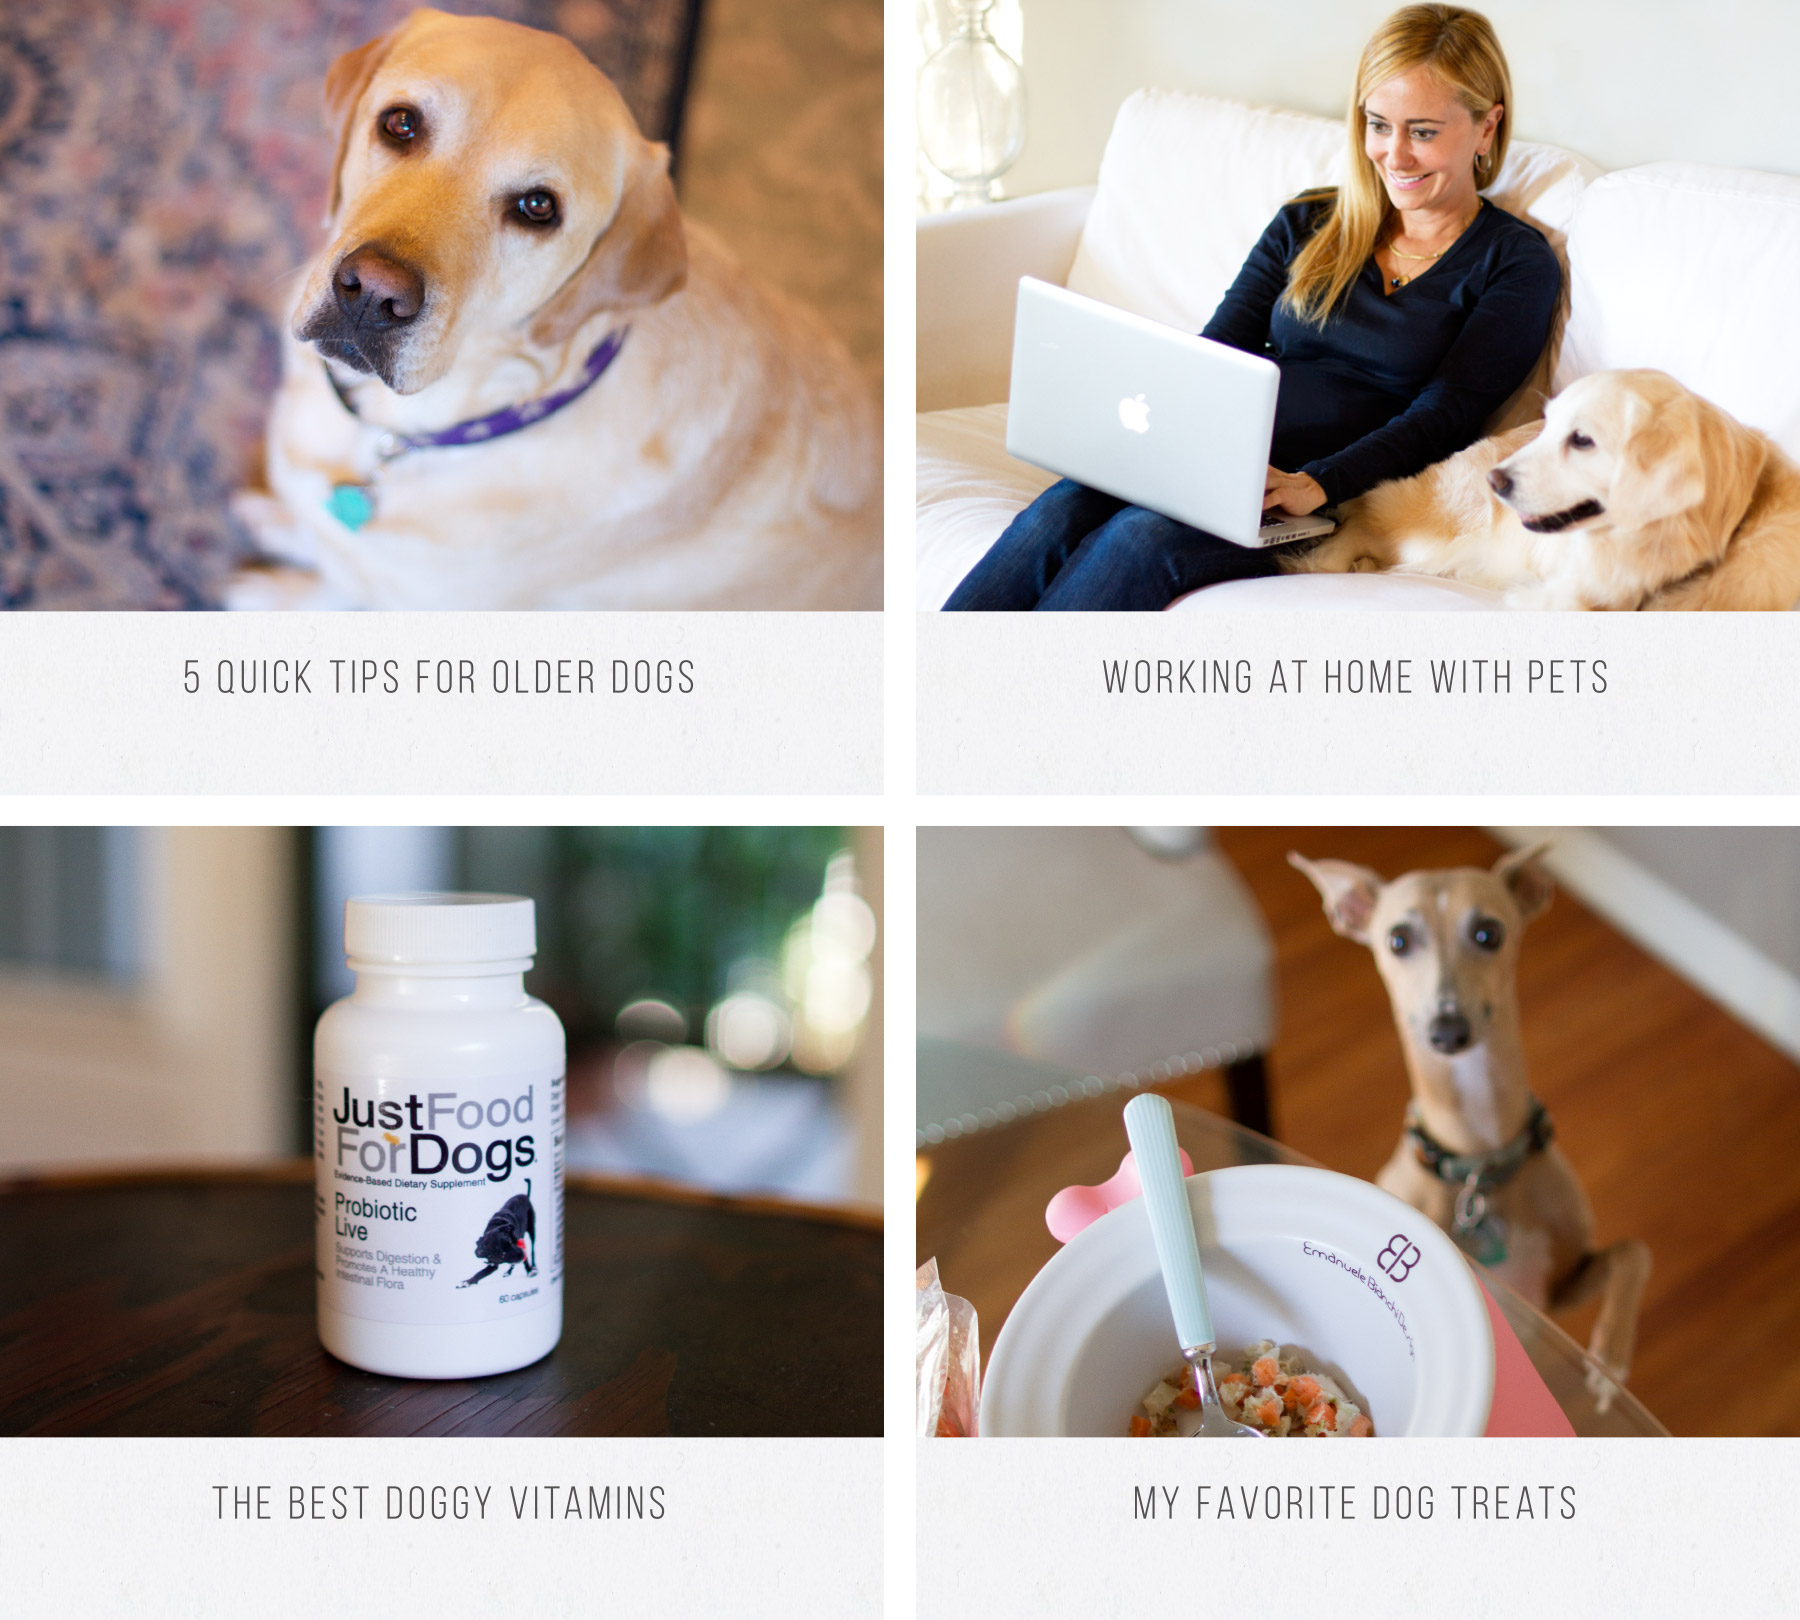 Cute dog imagery for a blog